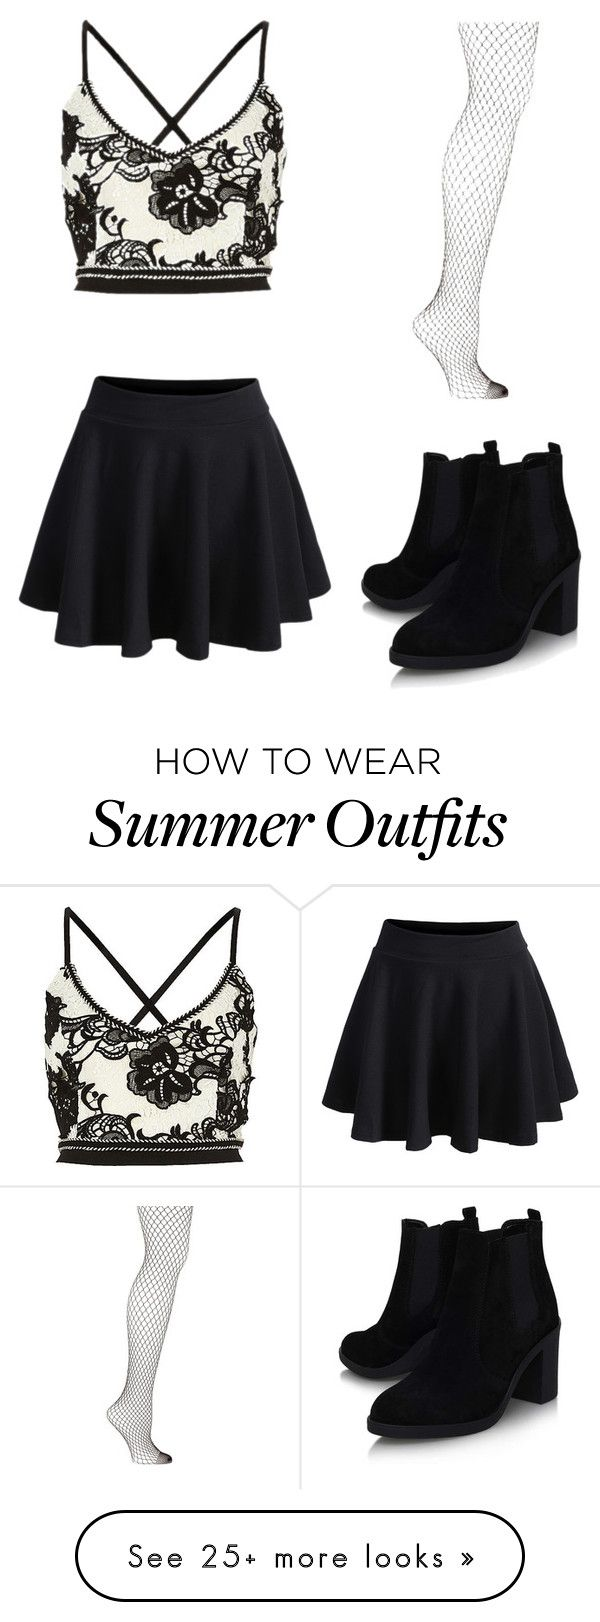 "d5499a0fcbfa ""Classy black and white summer outfit"" by alexking2456 on Polyvore featuring  WithChic, Emilio Cavallini and Topshop"